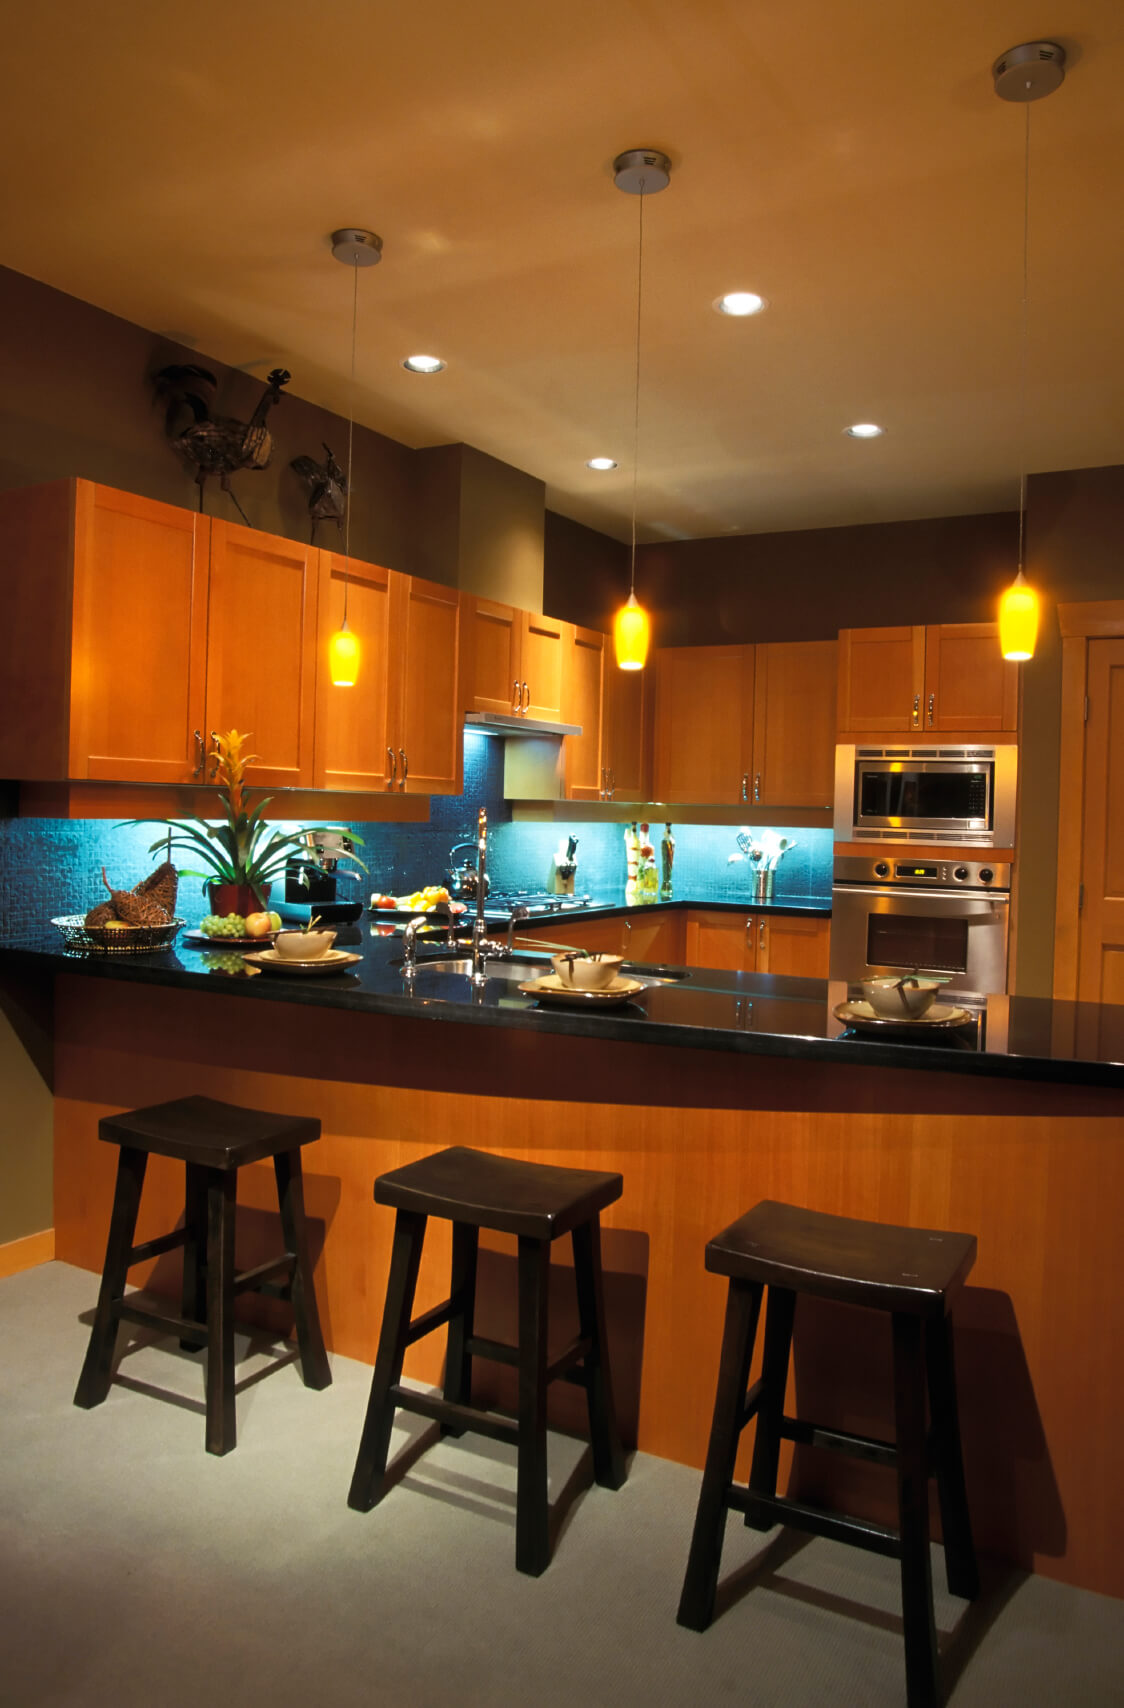 52 dark kitchens with dark wood and black kitchen cabinets Kitchen design black countertops